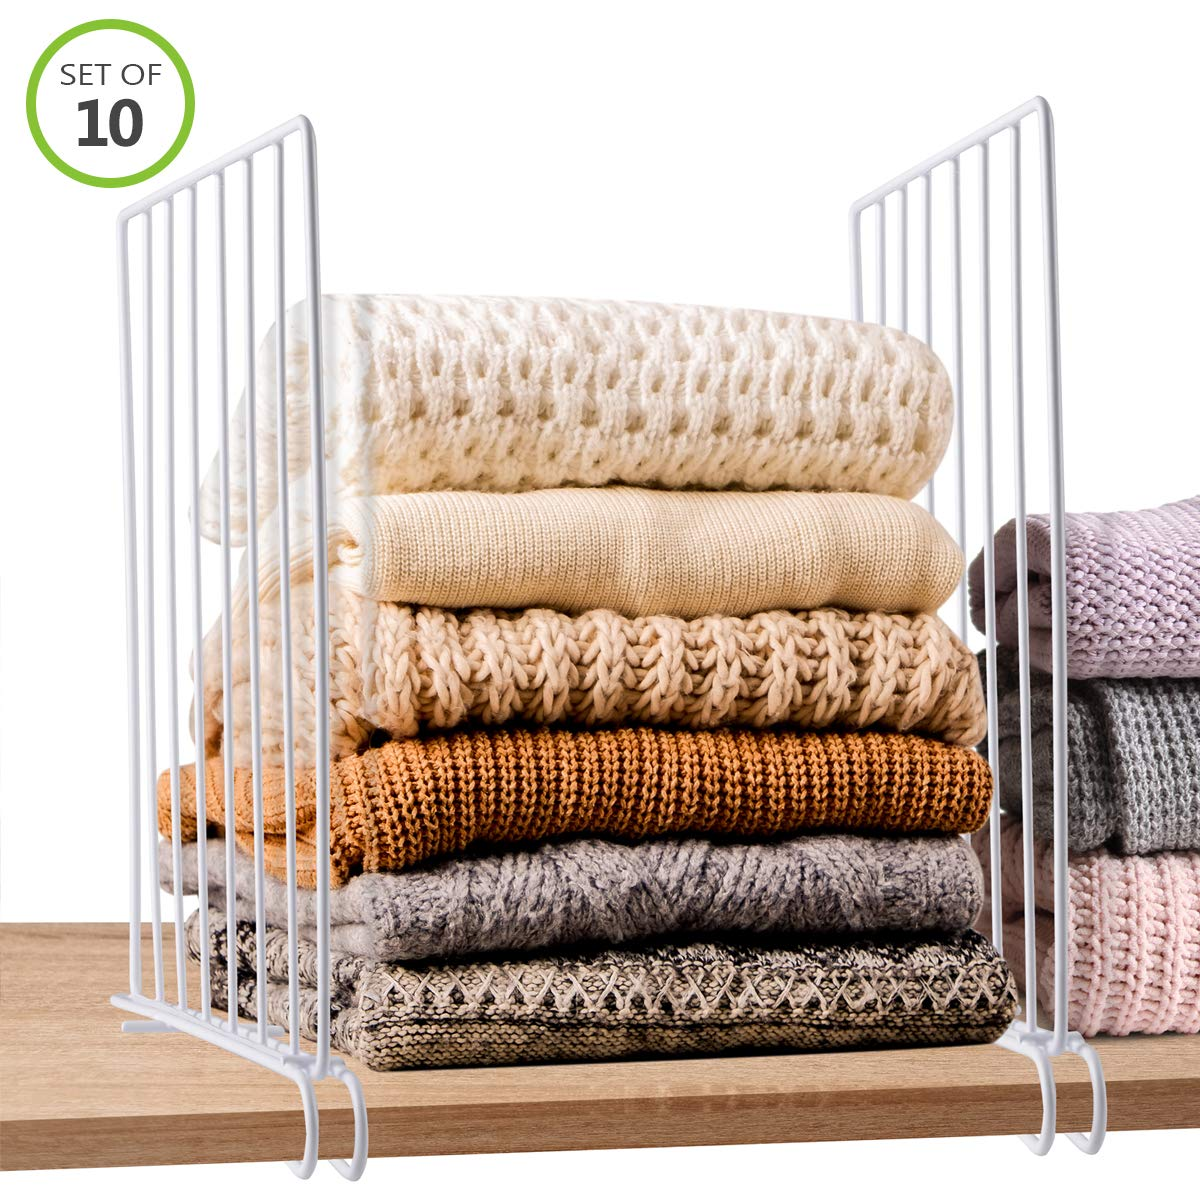 Tiawudi Closet Wood Shelf Divider, 10 Pack Metal Wire Closet Shelf Organizer, Separator for Office Bathroom, Bedroom and Office Shelves, Easy Installation